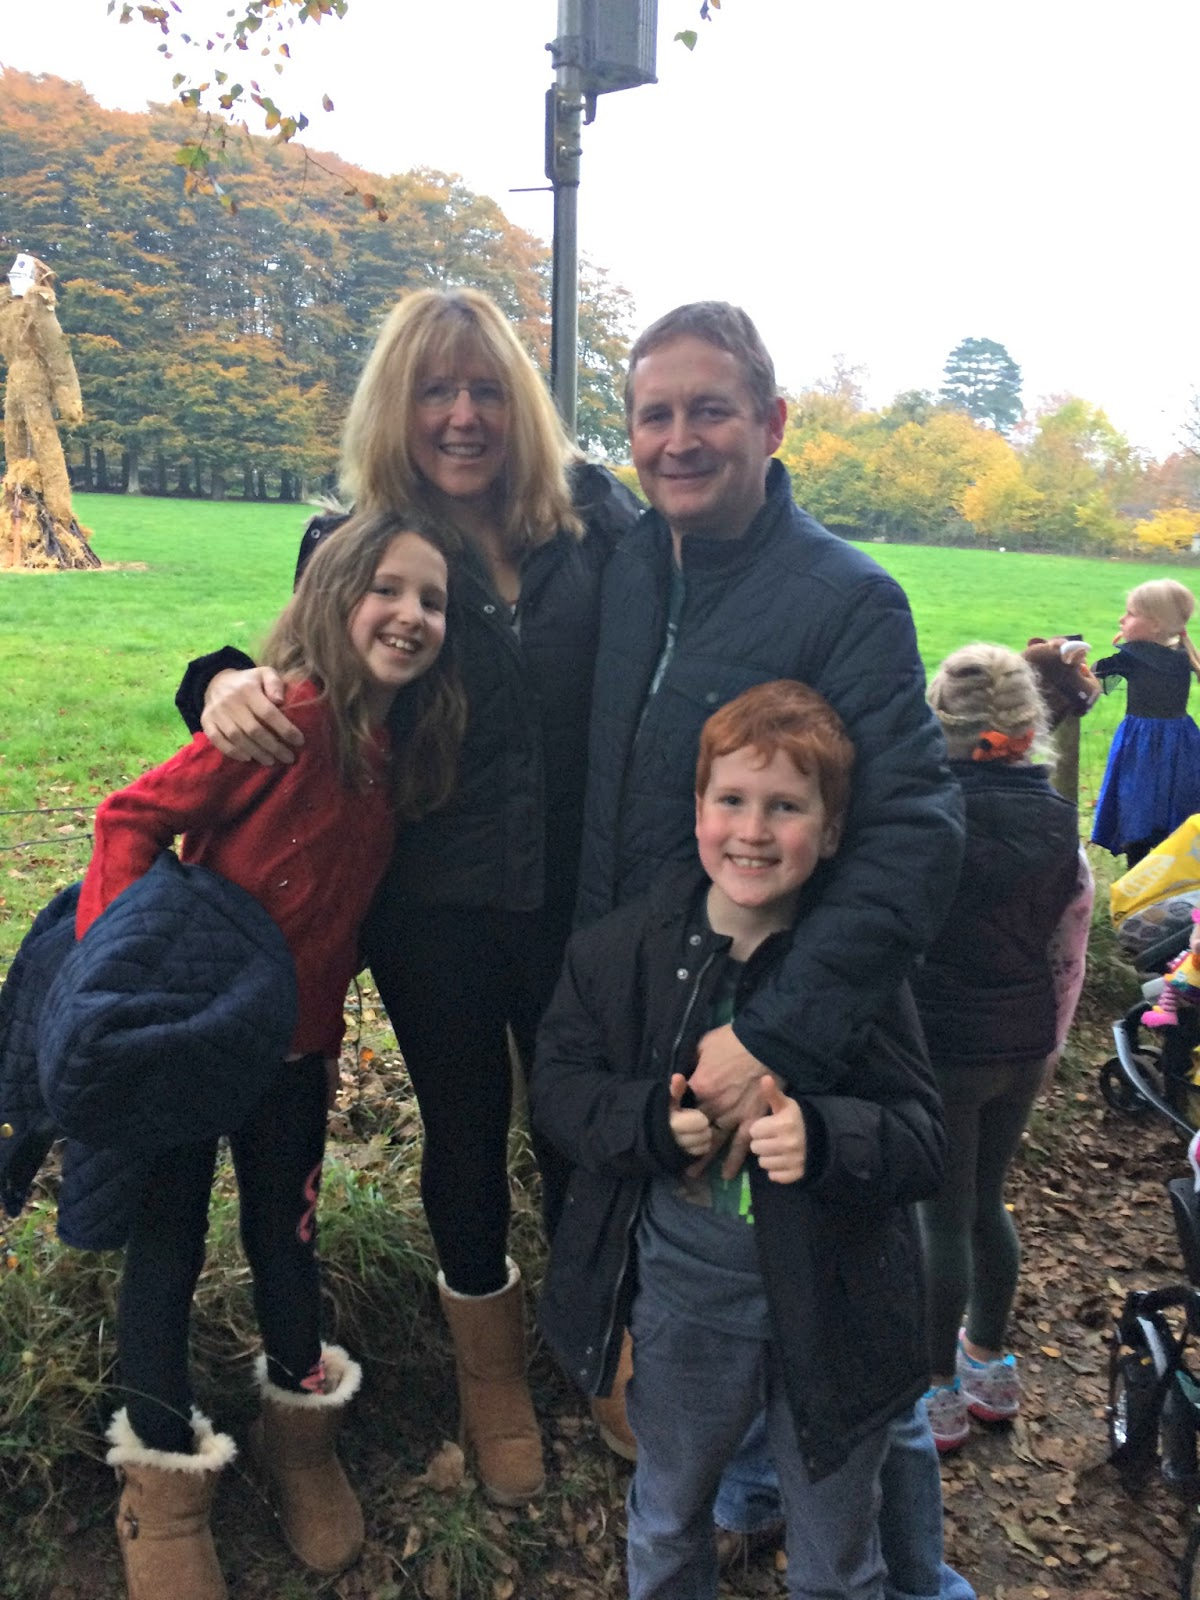 Hobbis Family at Wicker Man burning, St. Fagins, Halloween 2016